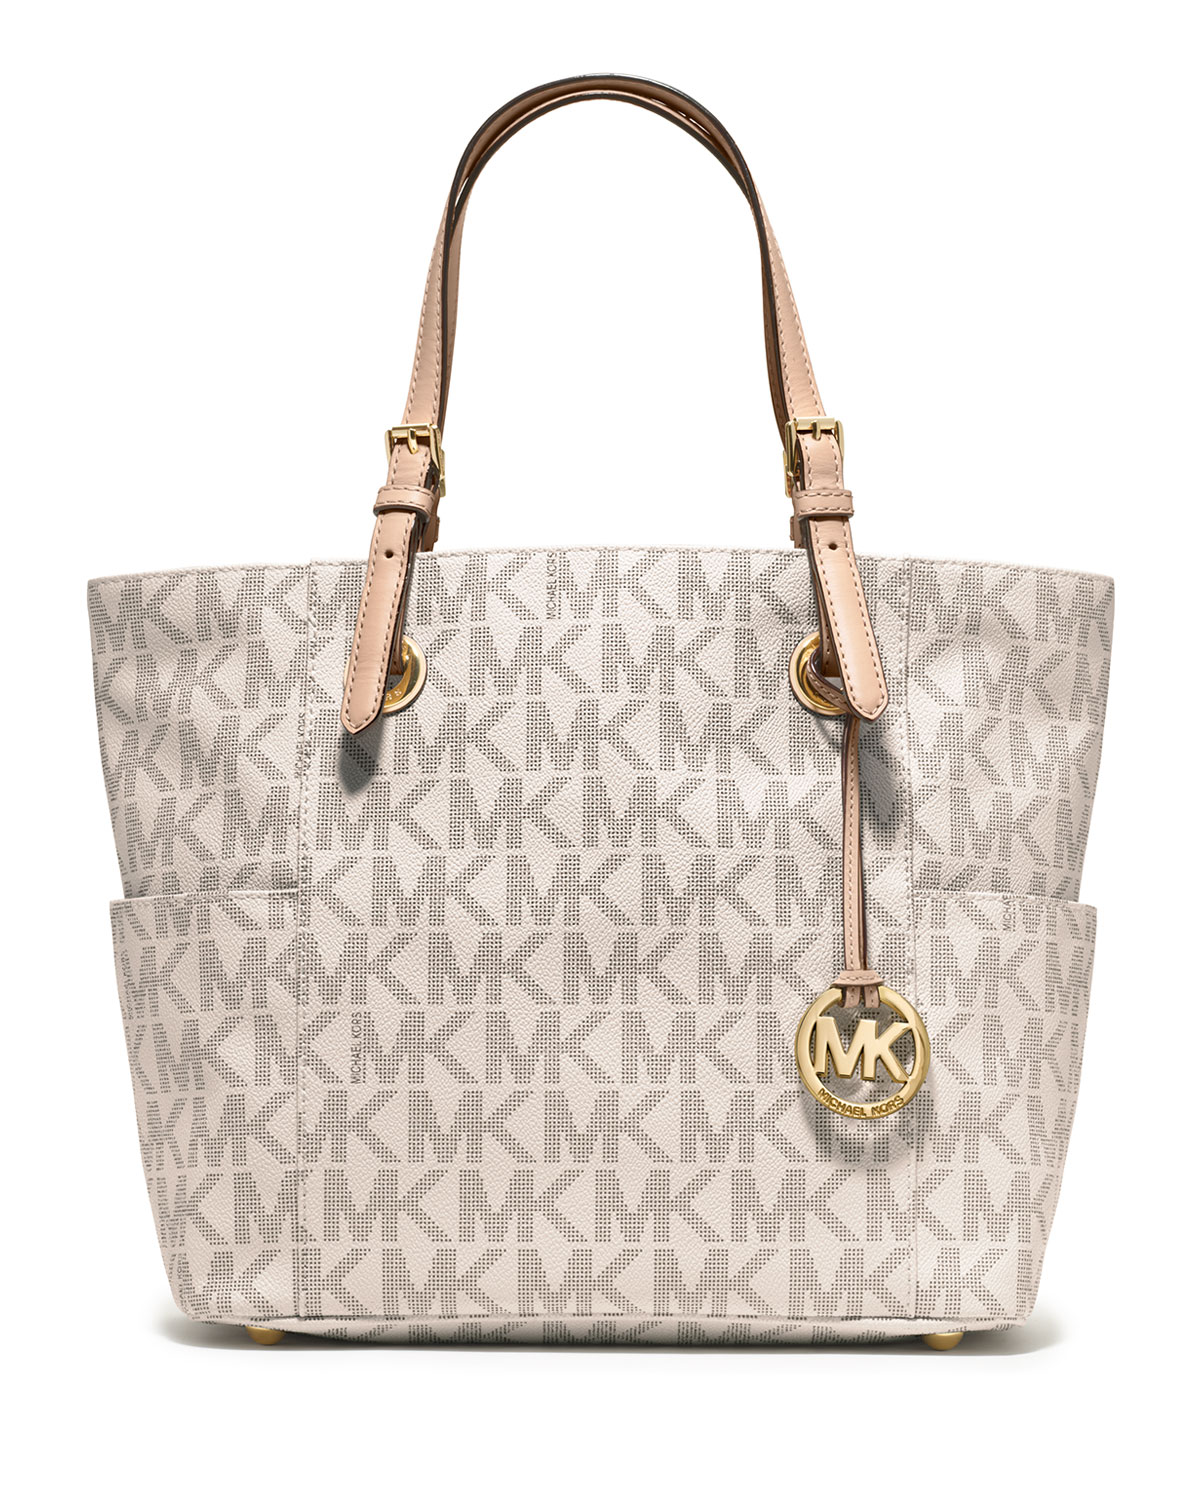 527cd46501a8 MICHAEL Michael Kors Jet Set Logo Monogram Item Tote Bag | Neiman Marcus